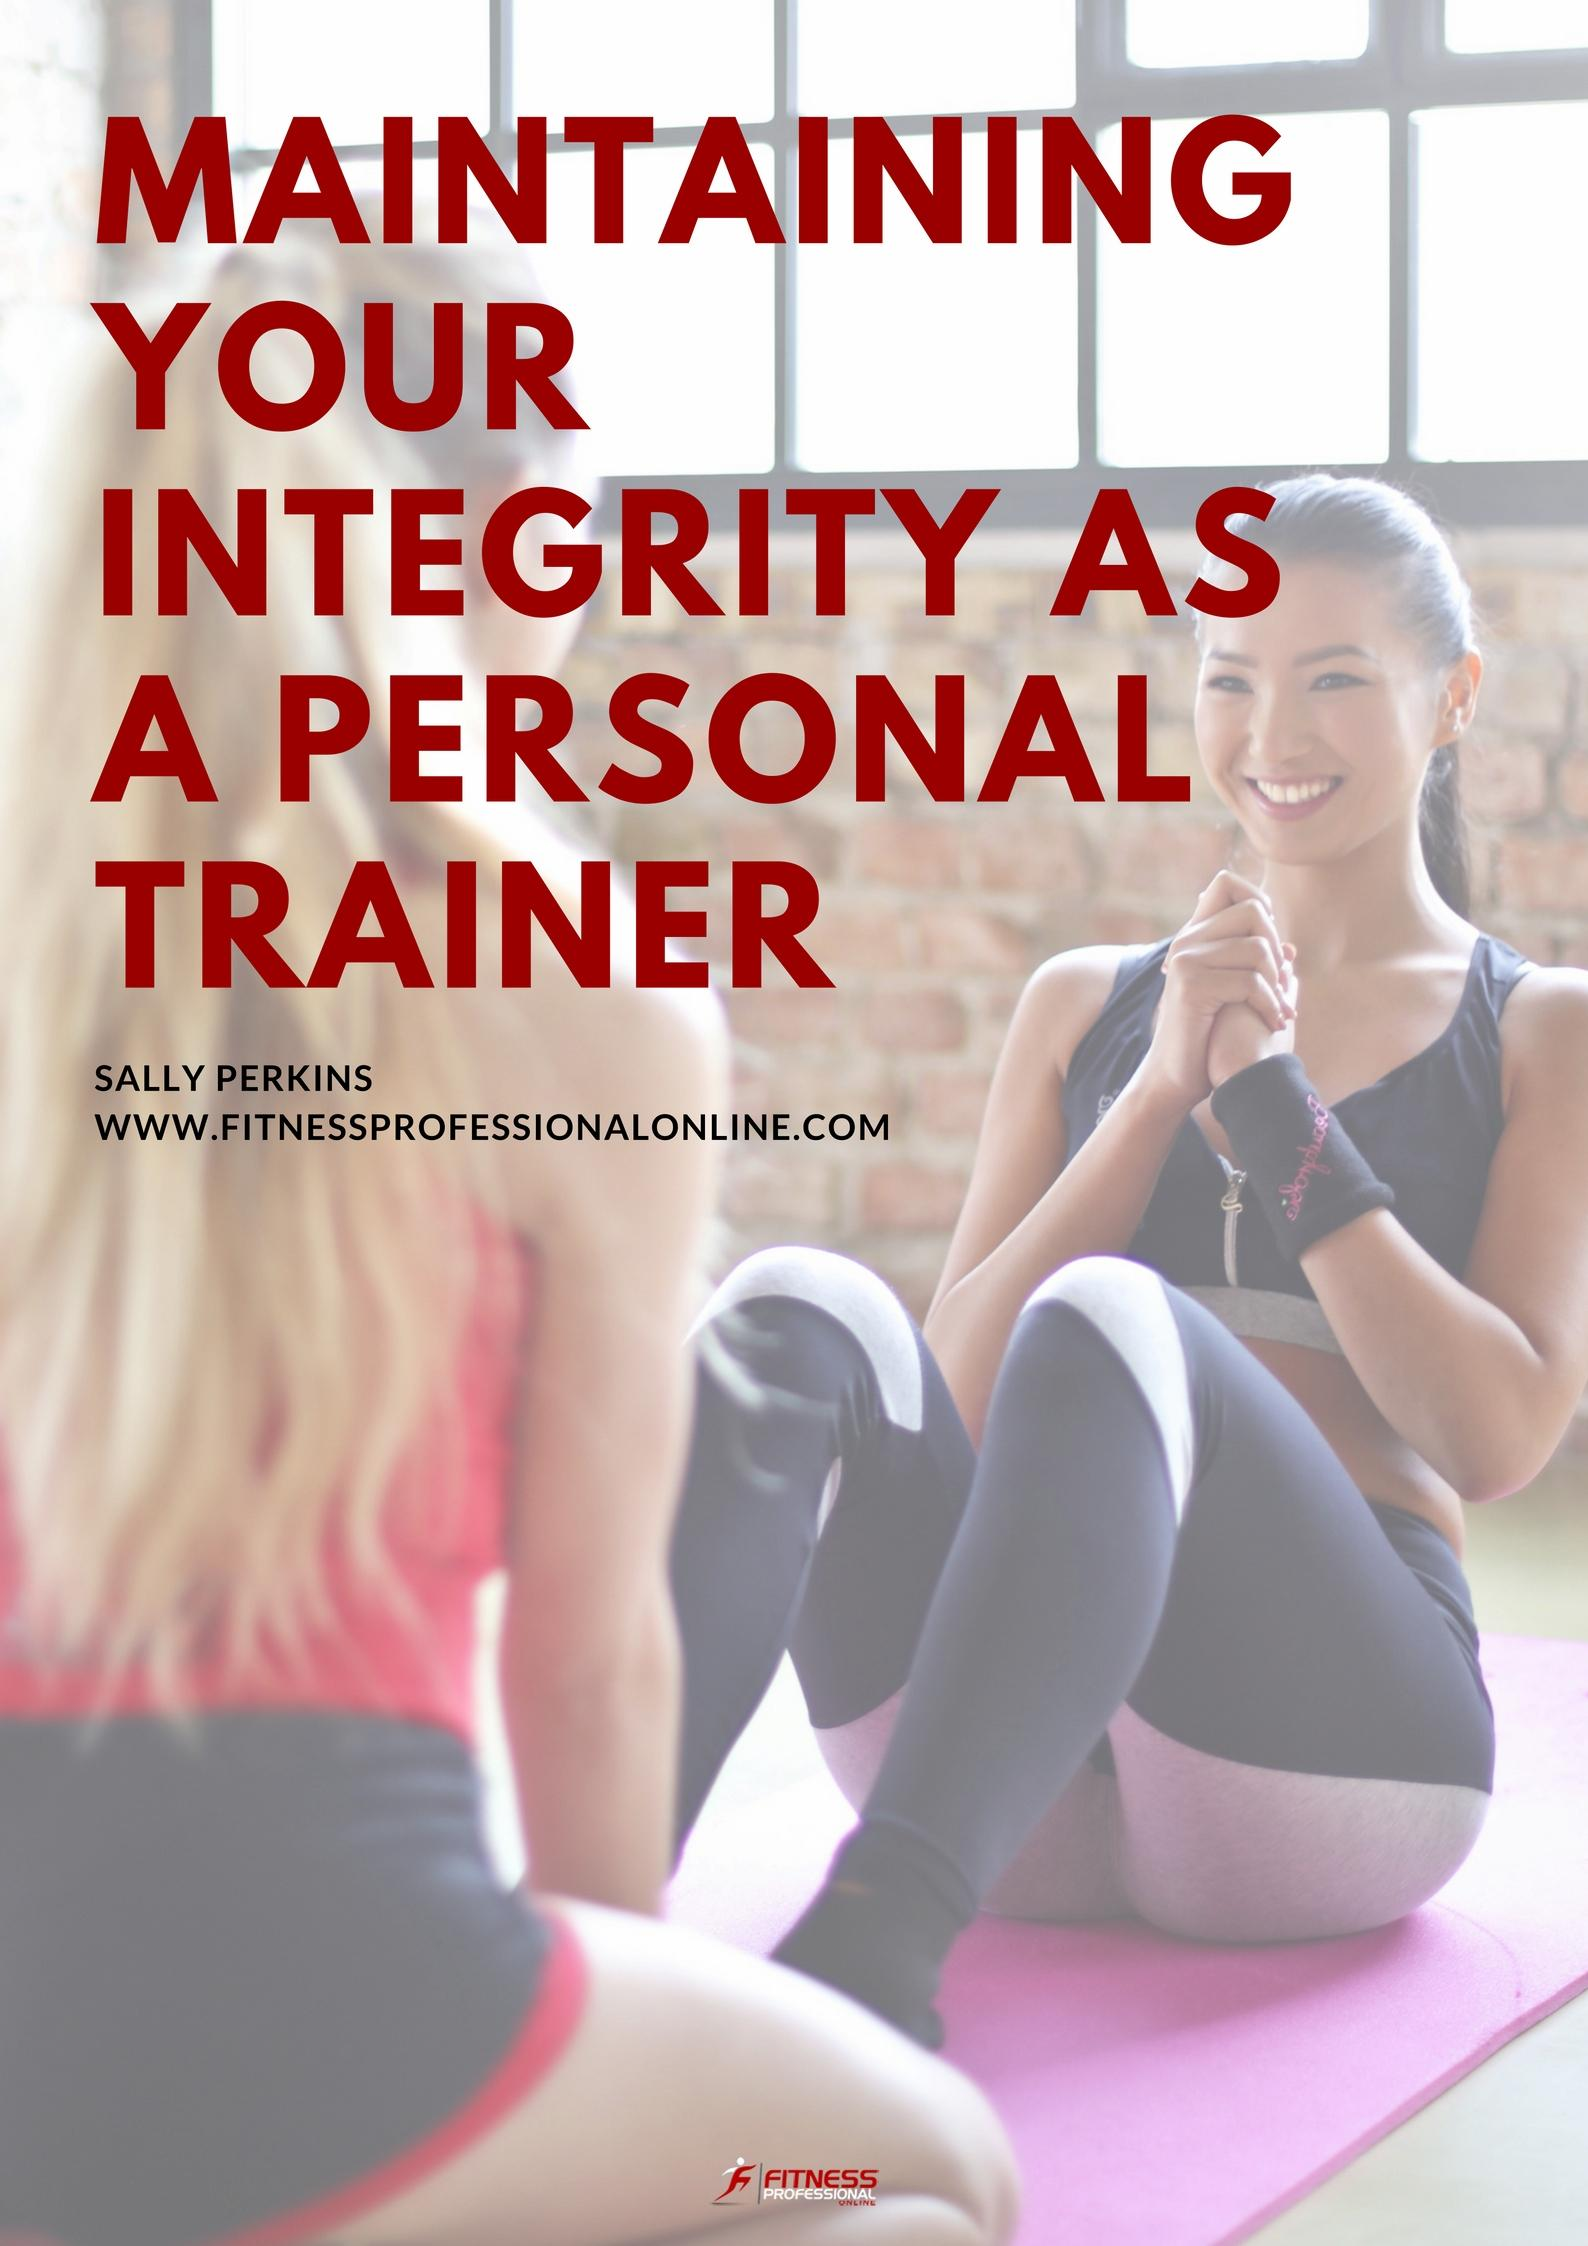 Every personal trainer worth their salt knows that fad diets and exercise programs don't work.